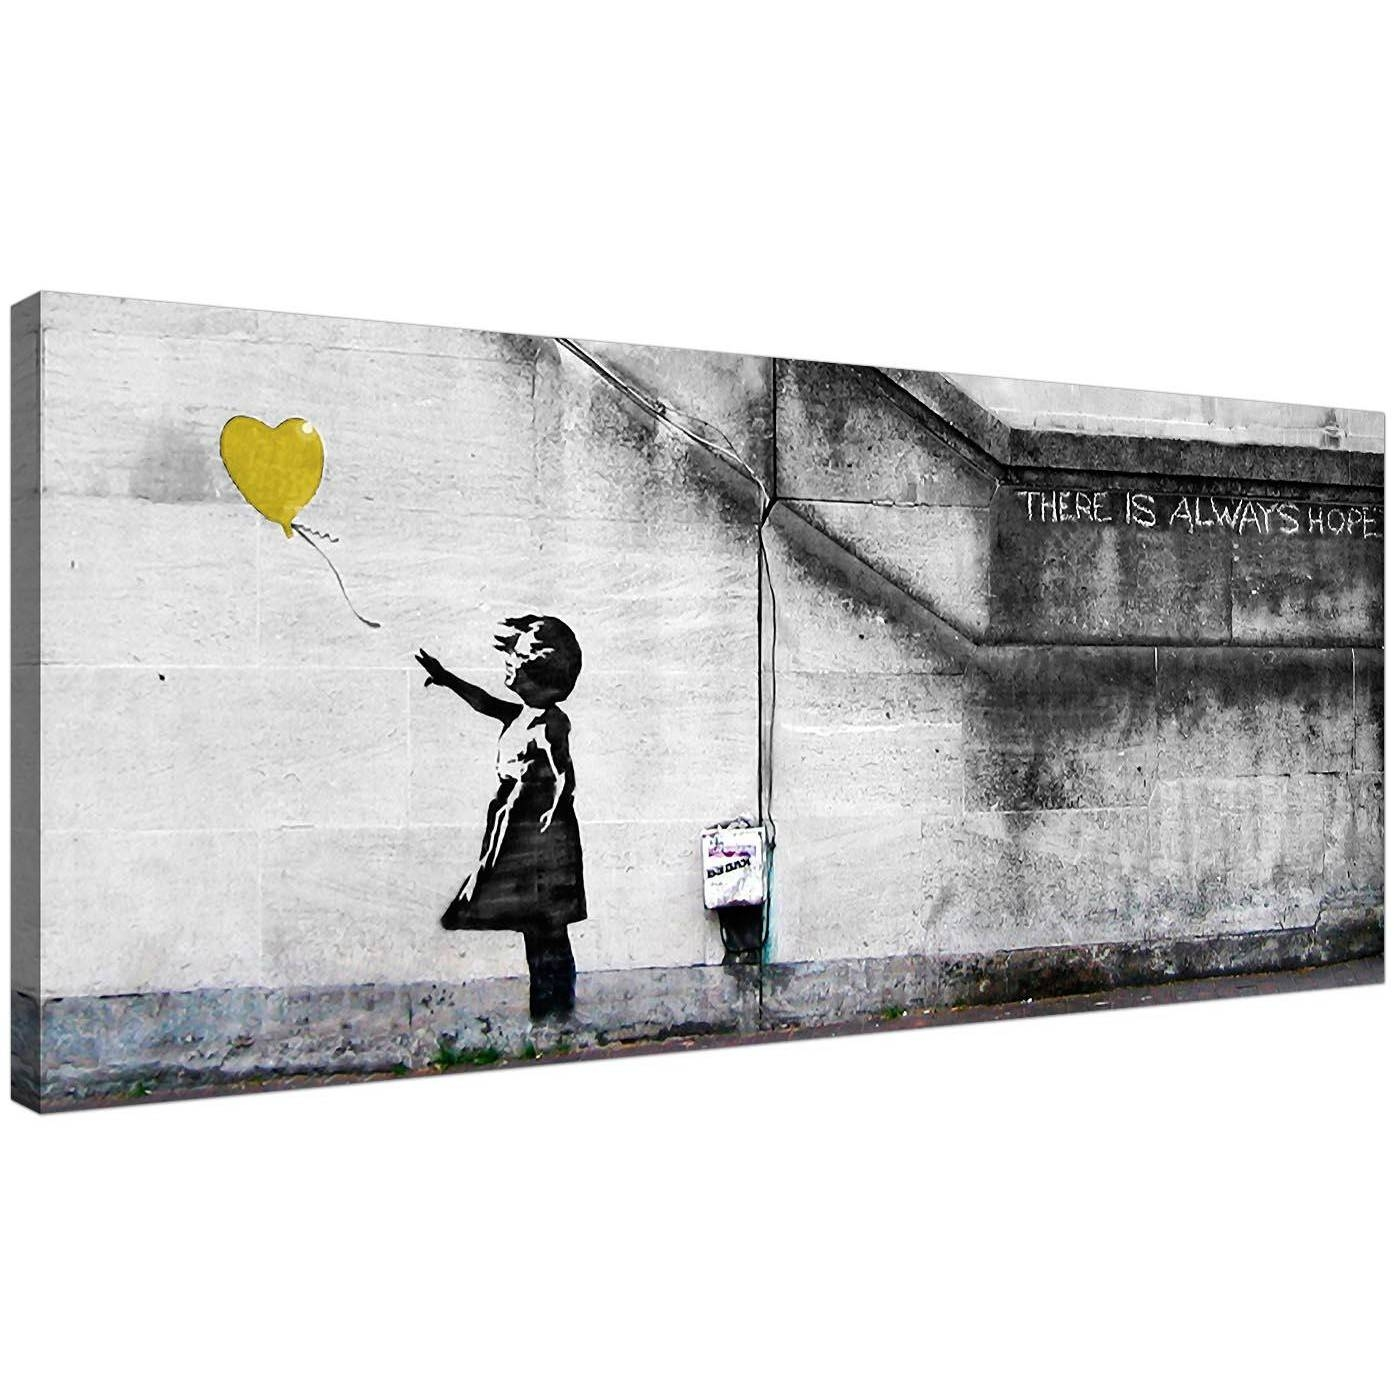 Cheap Yellow Canvas Art Of Banksy Balloon Girl For 2017 Large Yellow Wall Art (View 12 of 20)